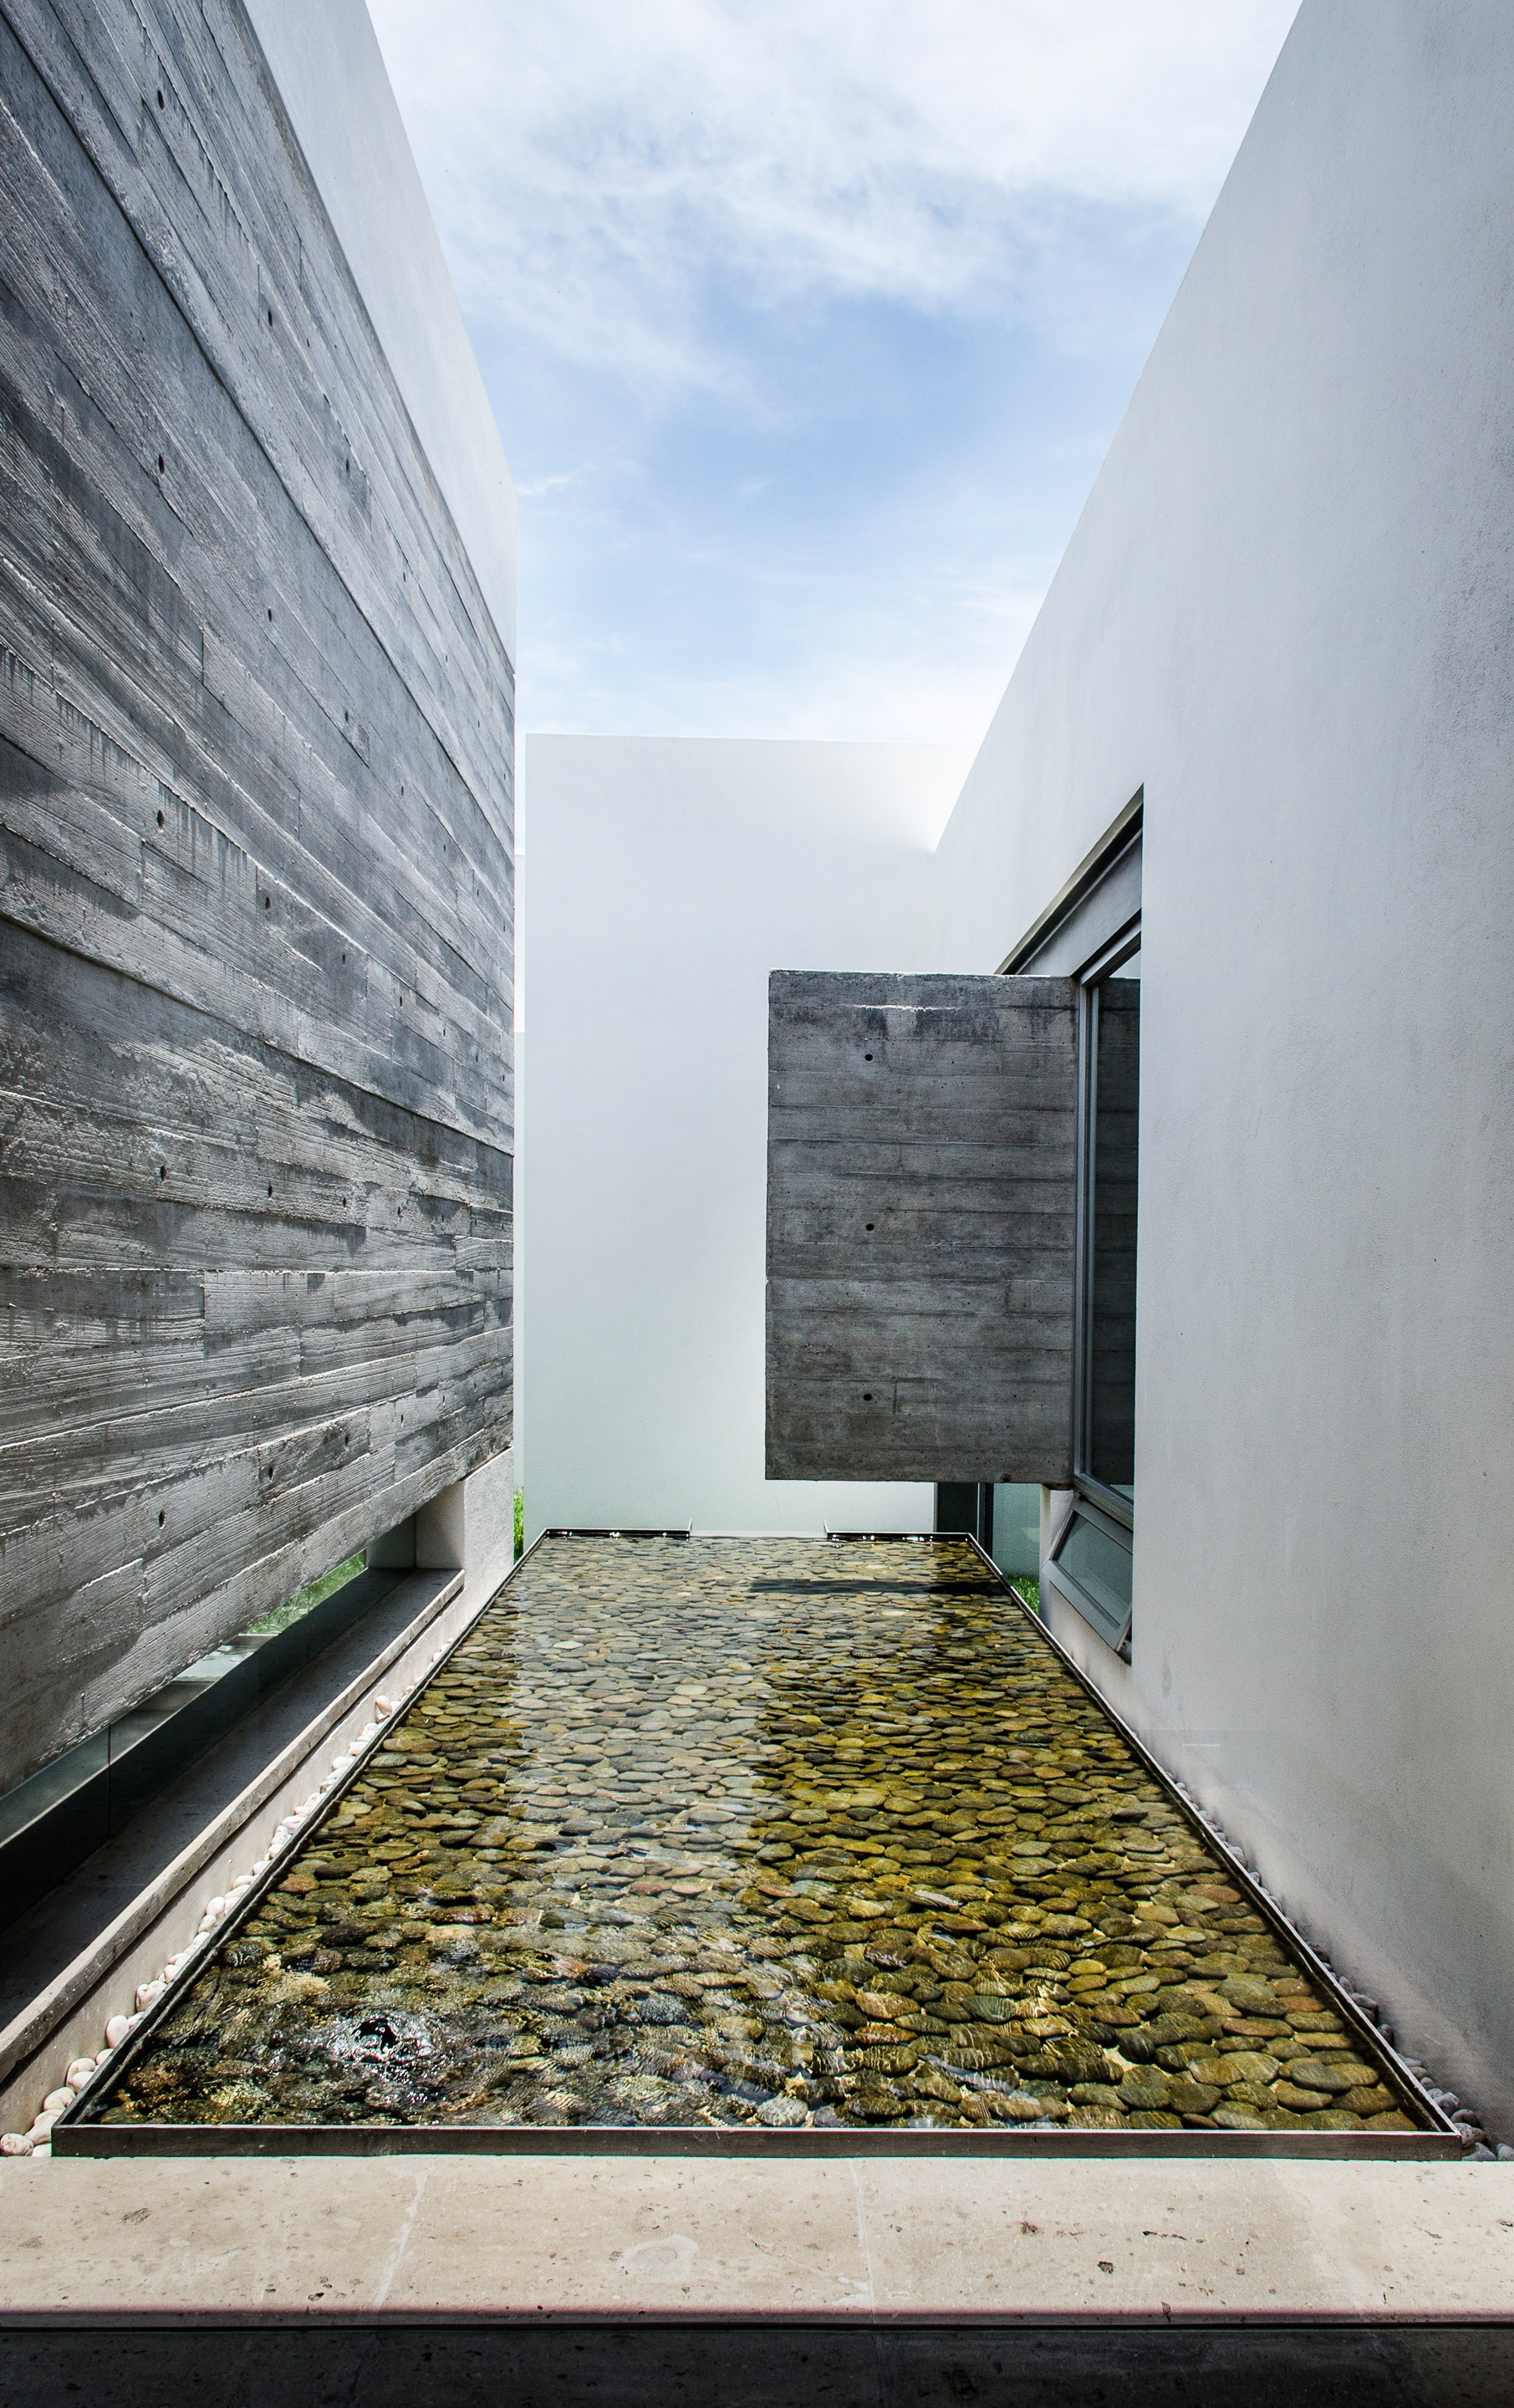 Gallery of t02 adi arquitectura y dise o interior 20 for Arquitectura y diseno